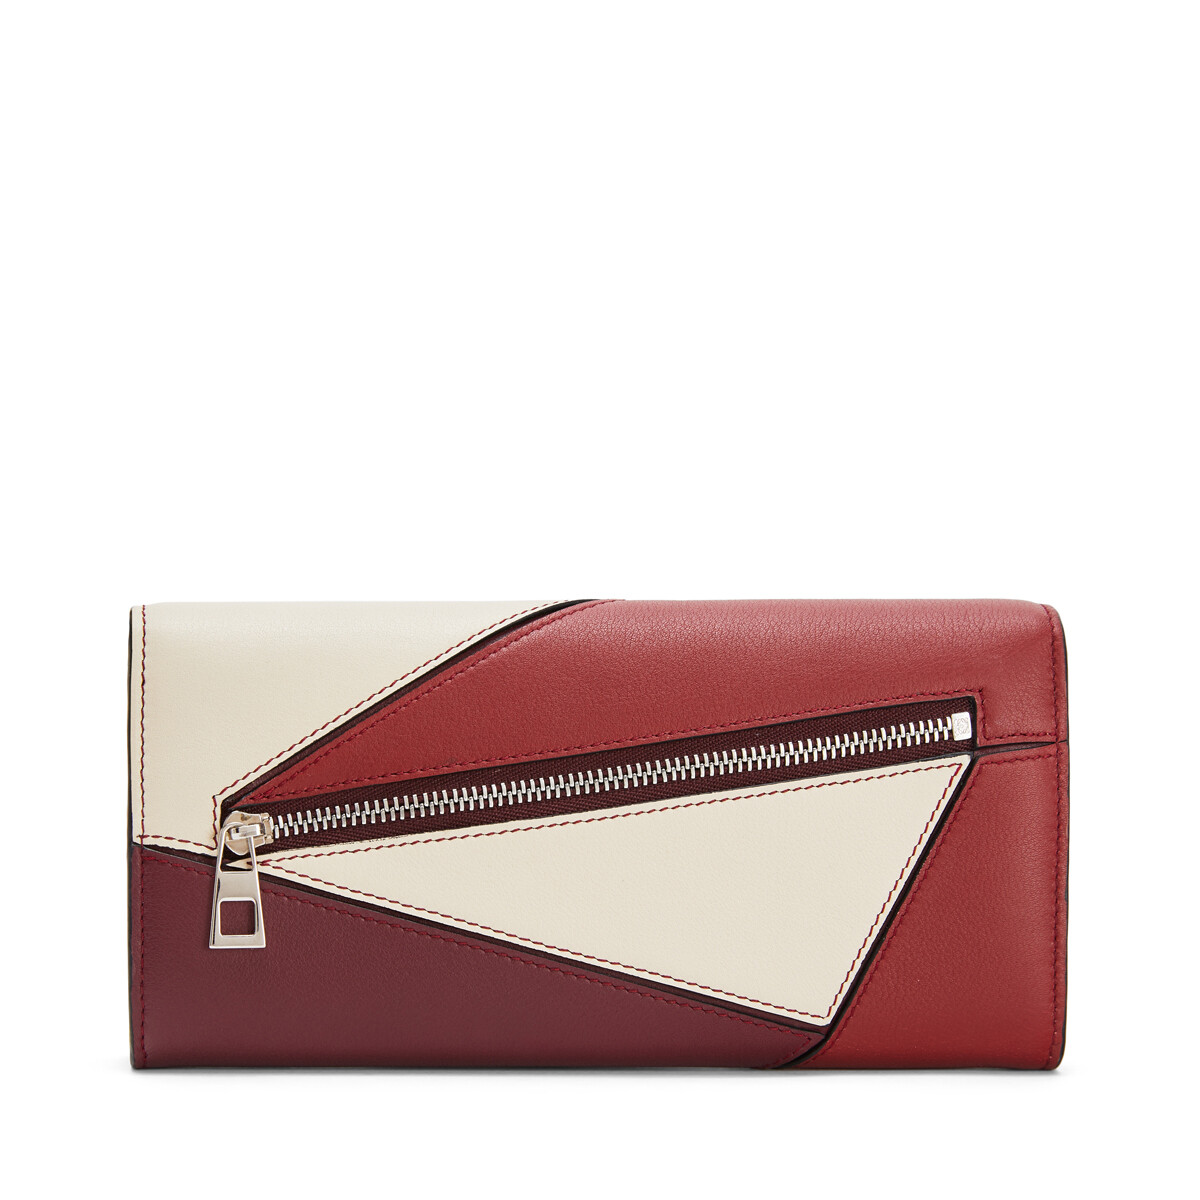 LOEWE Puzzle Continental Wallet Wine/Garnet front